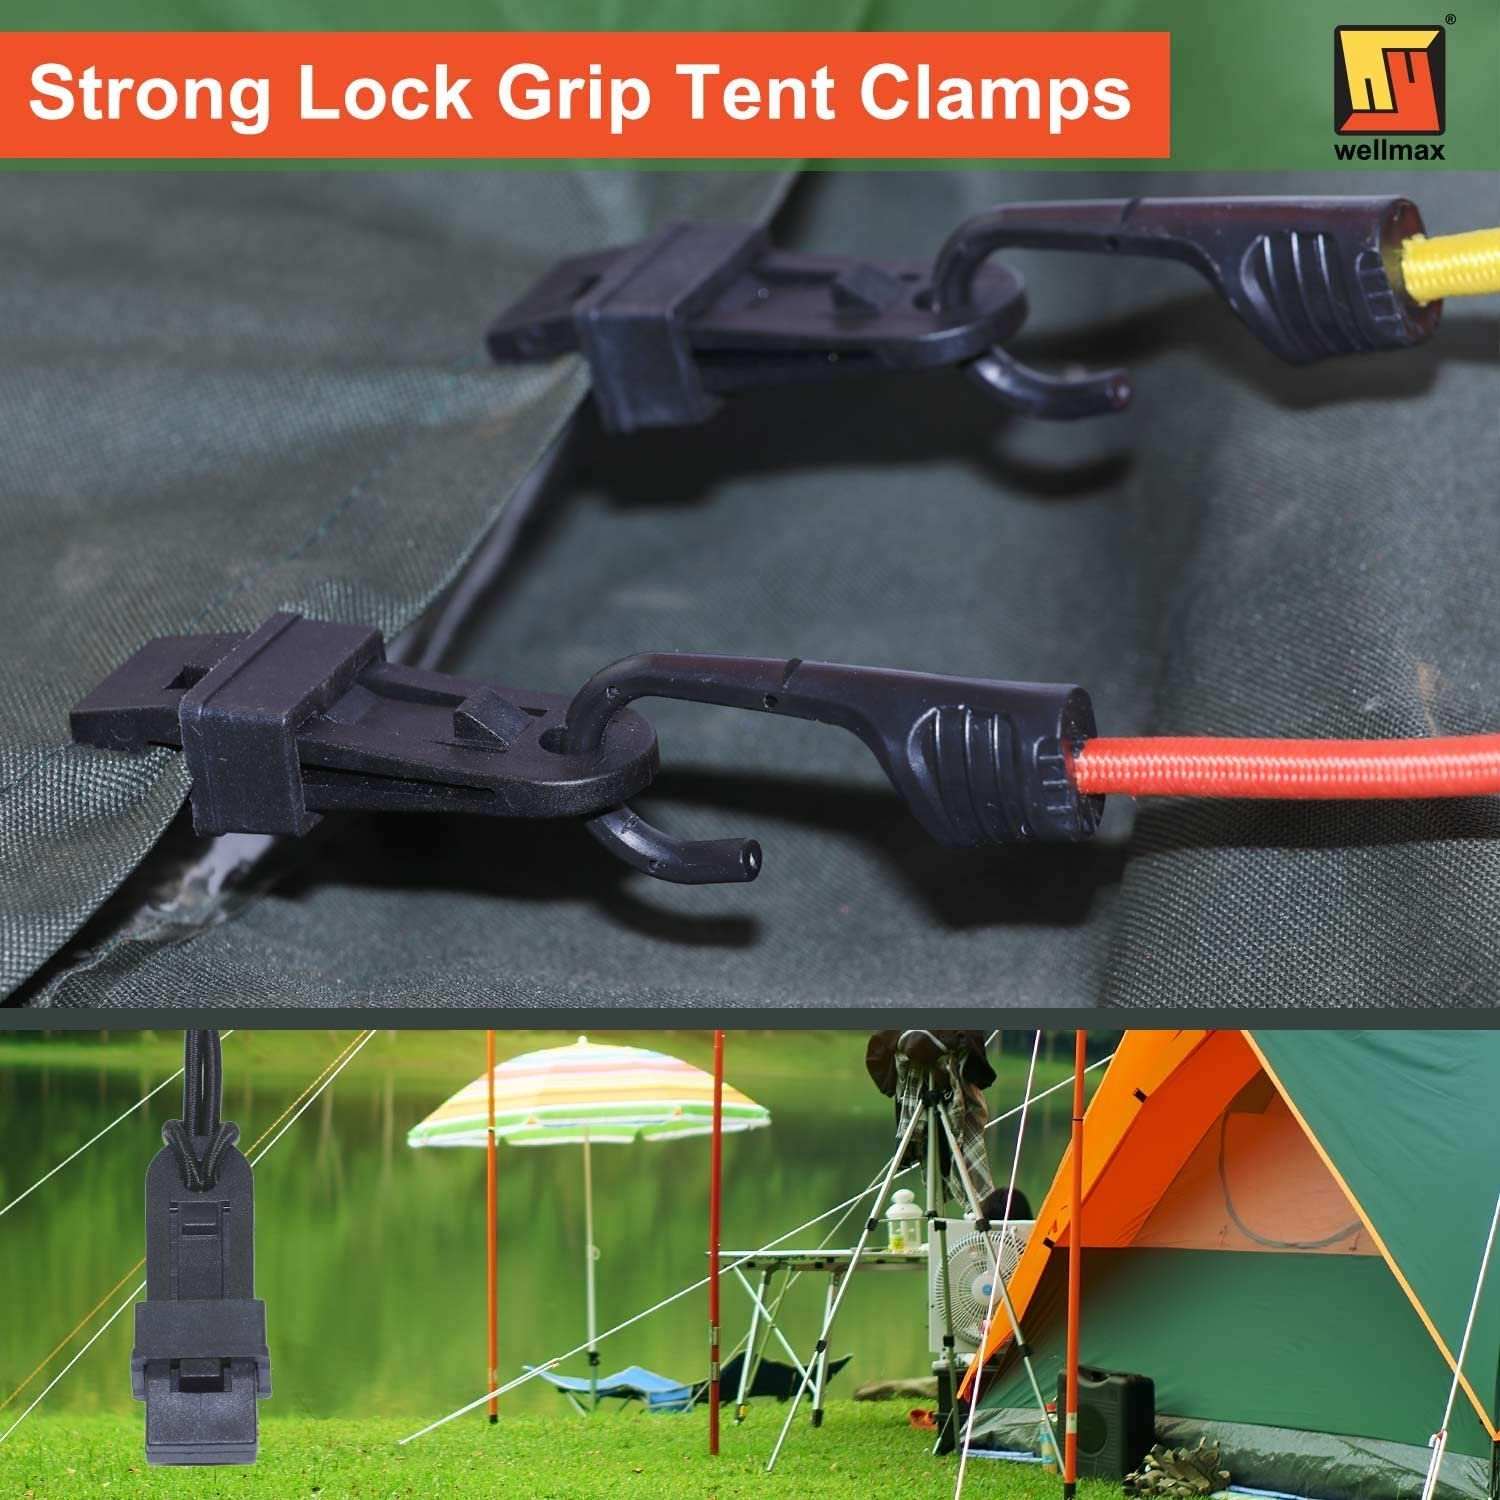 Canopy Multi-Purpose Awning Clamps for Holding Up Tarp Dioche 6pcs Tarp Clips Boat Cover and Pool Cover Outdoor Camping Black Sun Shade Car Cover